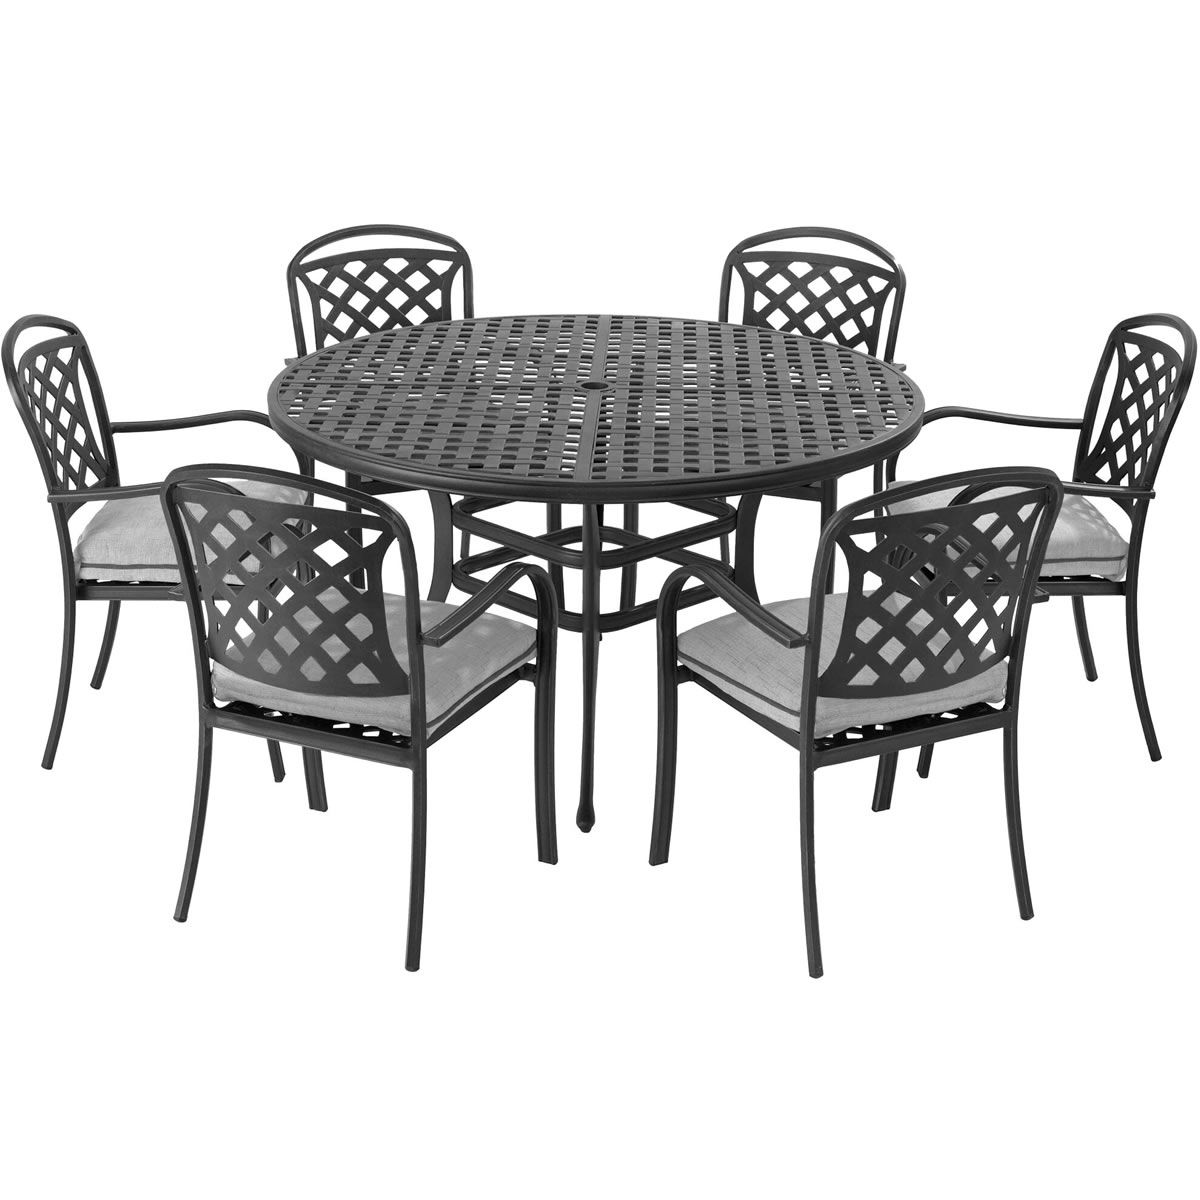 Part Of Our Extensive Range The Hartman Berkeley 6 Seater Round Furniture Set In Midnight